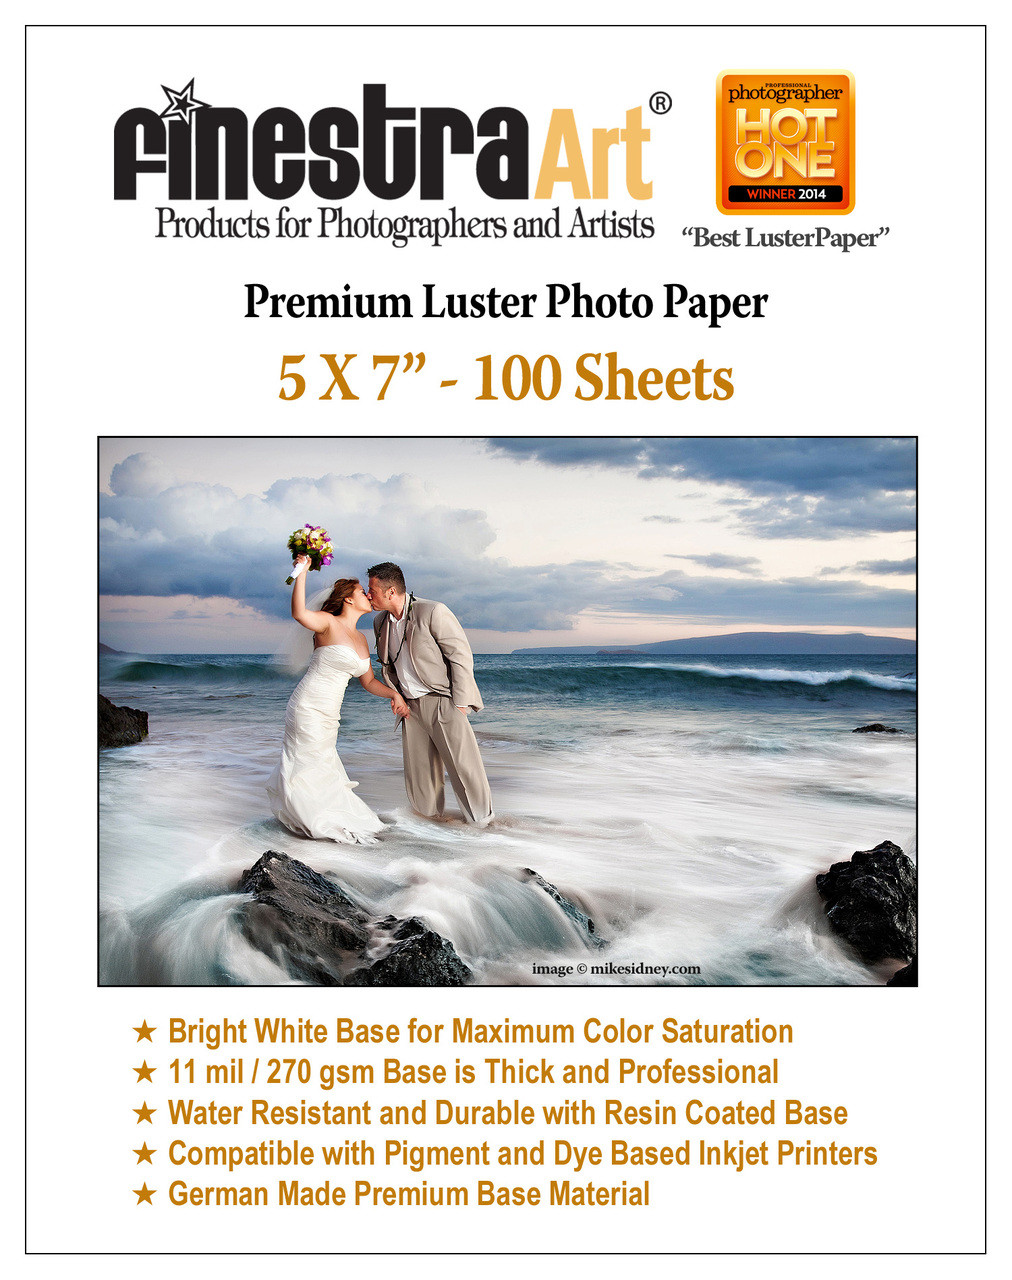 5x7 Premium Luster Photo Paper 100 Sheets Finestra Art